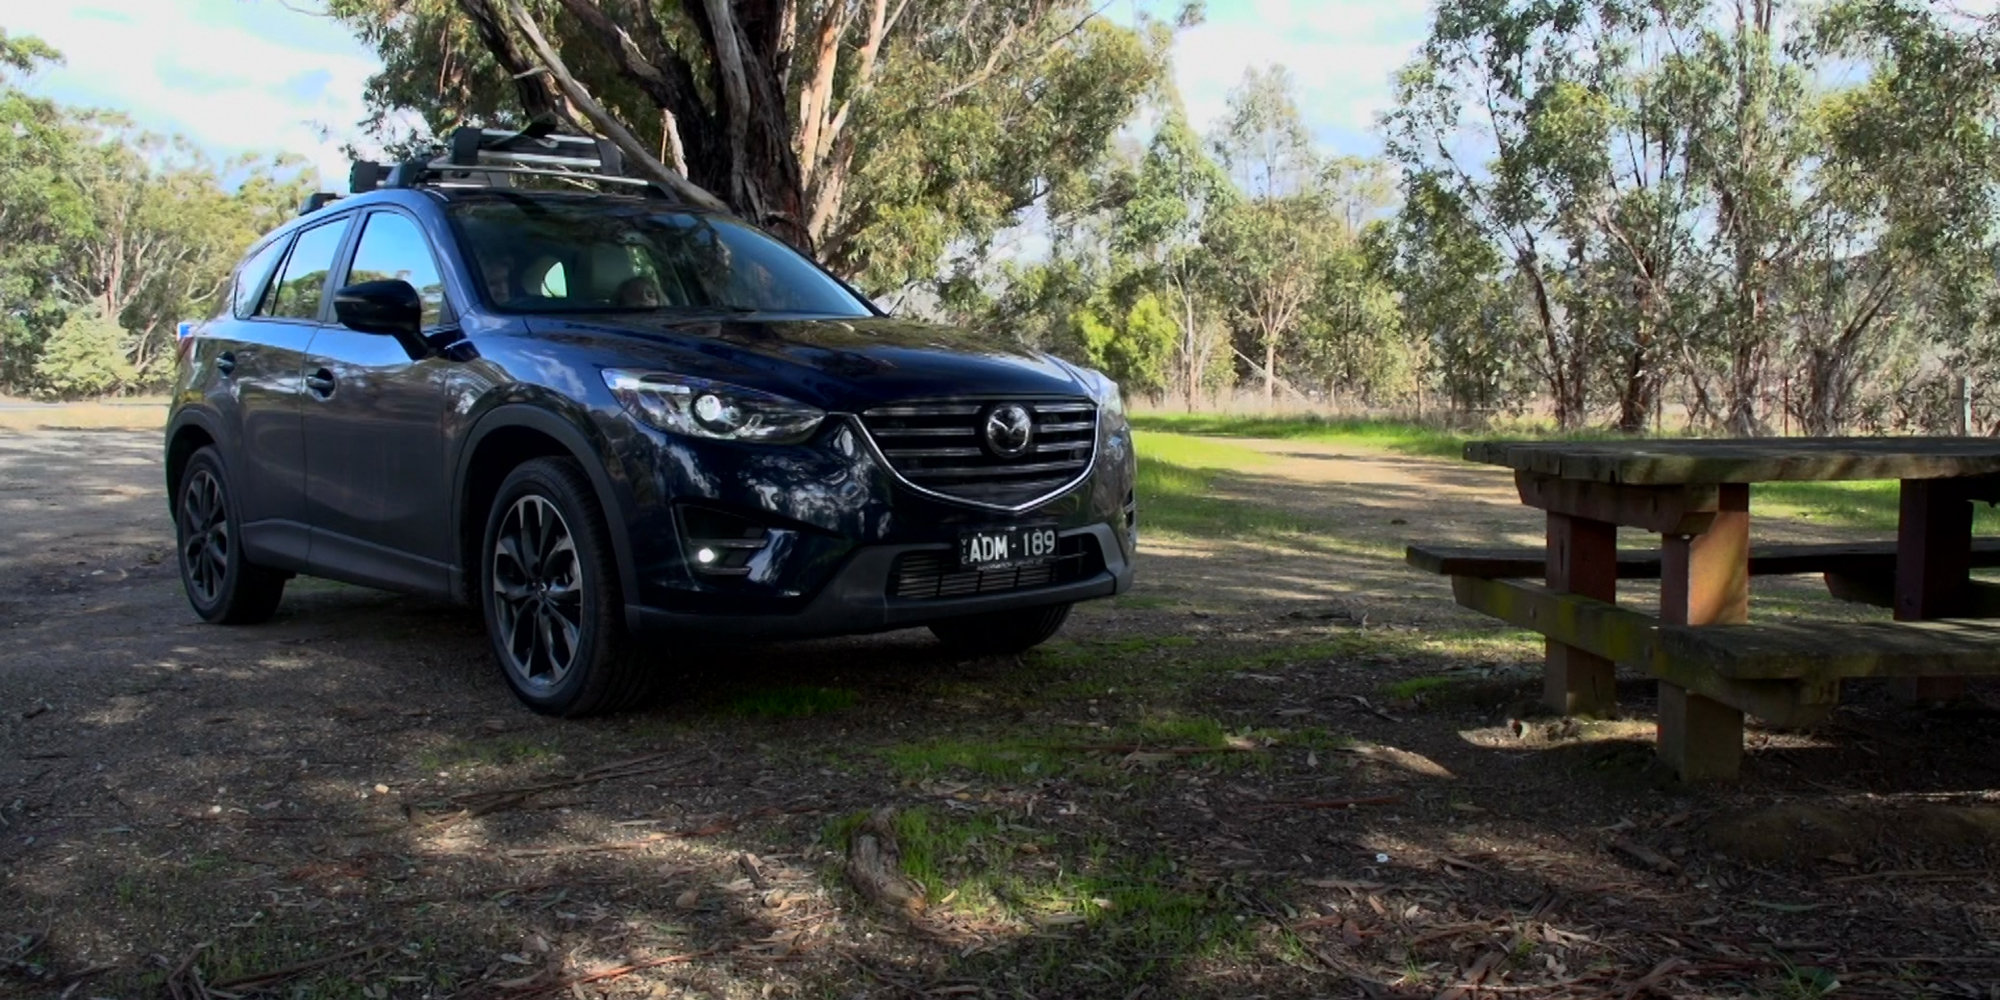 Lastest Top 10 Tips For Driving To The Snow 2015 Mazda CX5 Akera  Photos 1